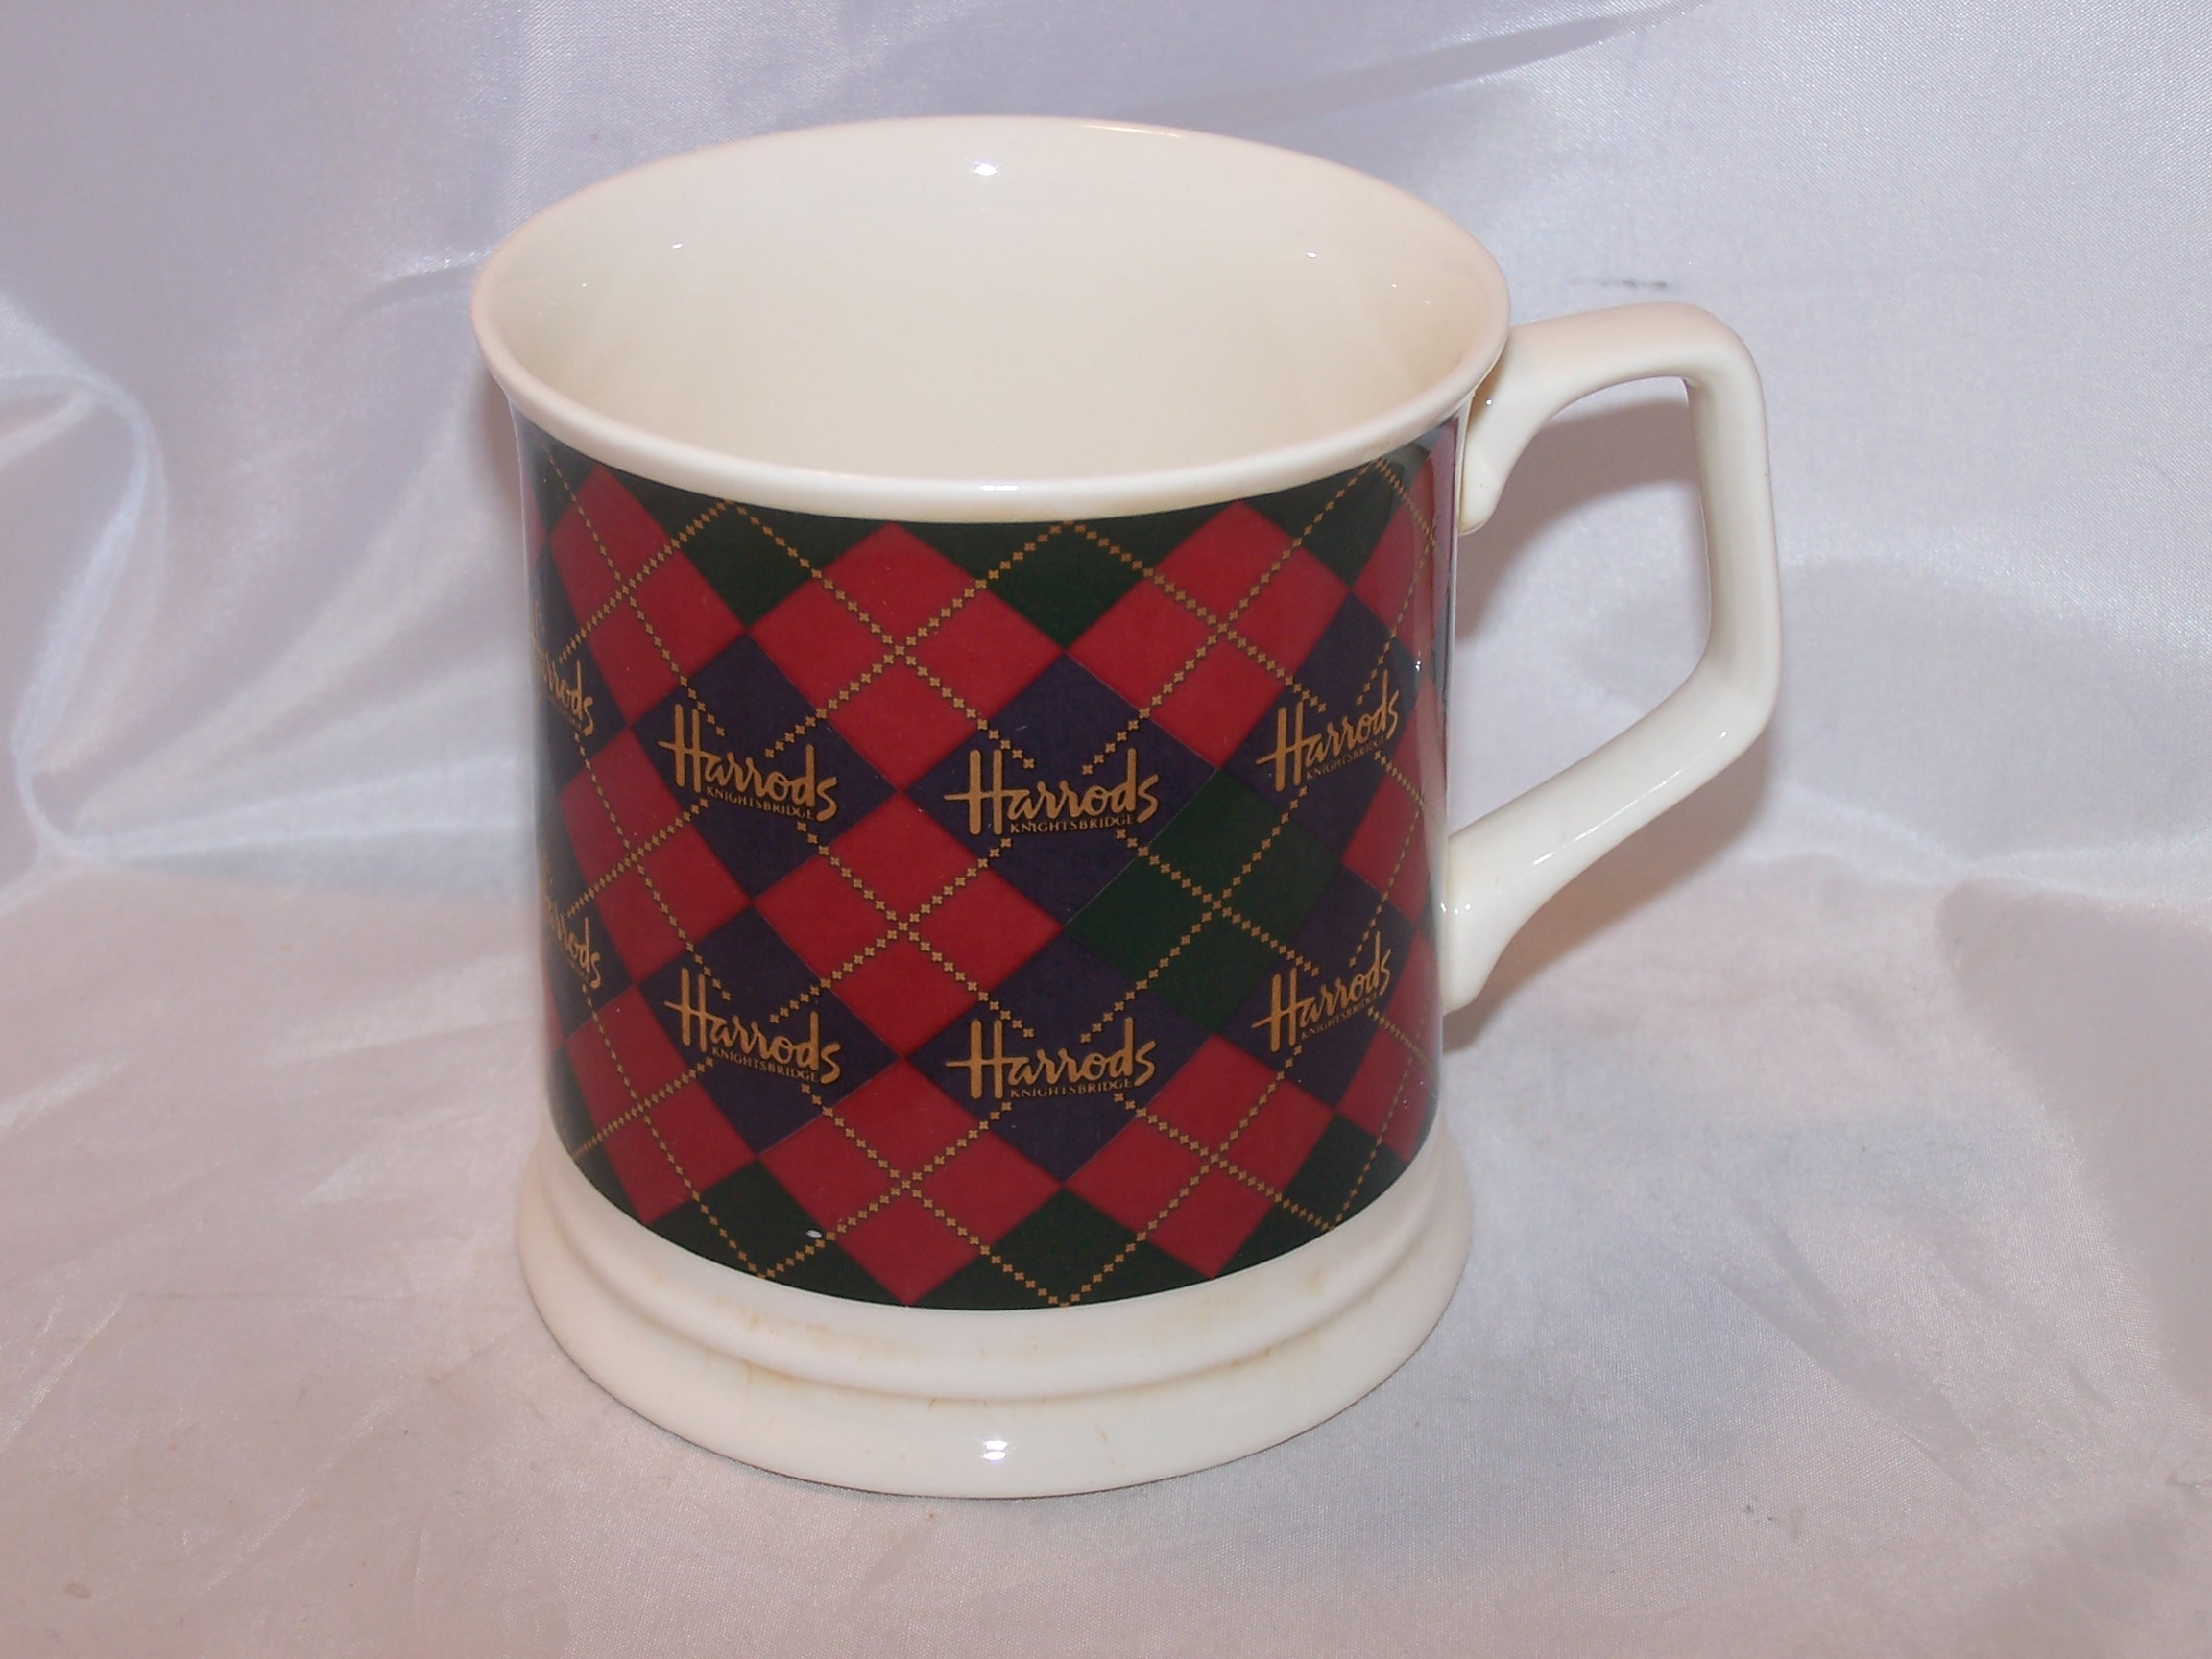 Harrods Plaid Mug, Cup, Knightsbridge, Green, Red